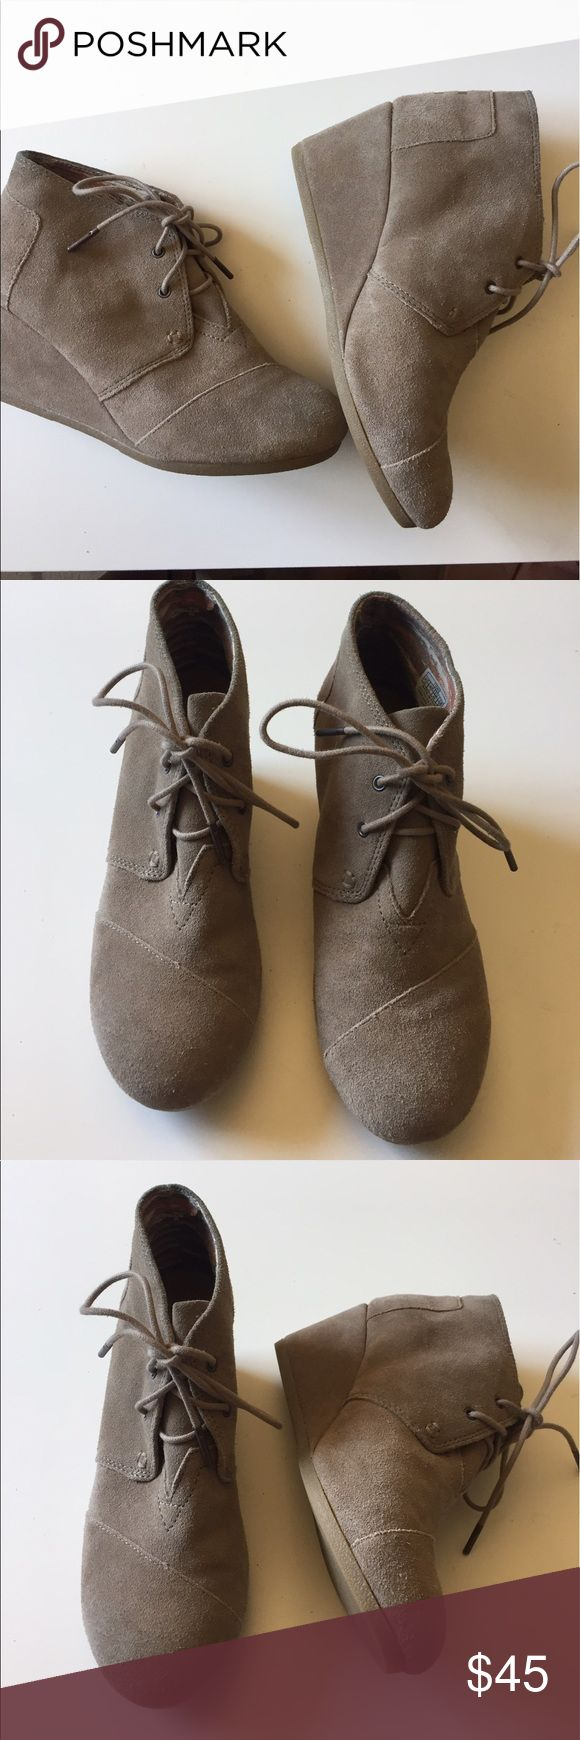 NEW Toms Desert wedges taupe suede size 8.5 Toms Desert wedge taupe suede brand new size 8.5 Toms Shoes Wedges